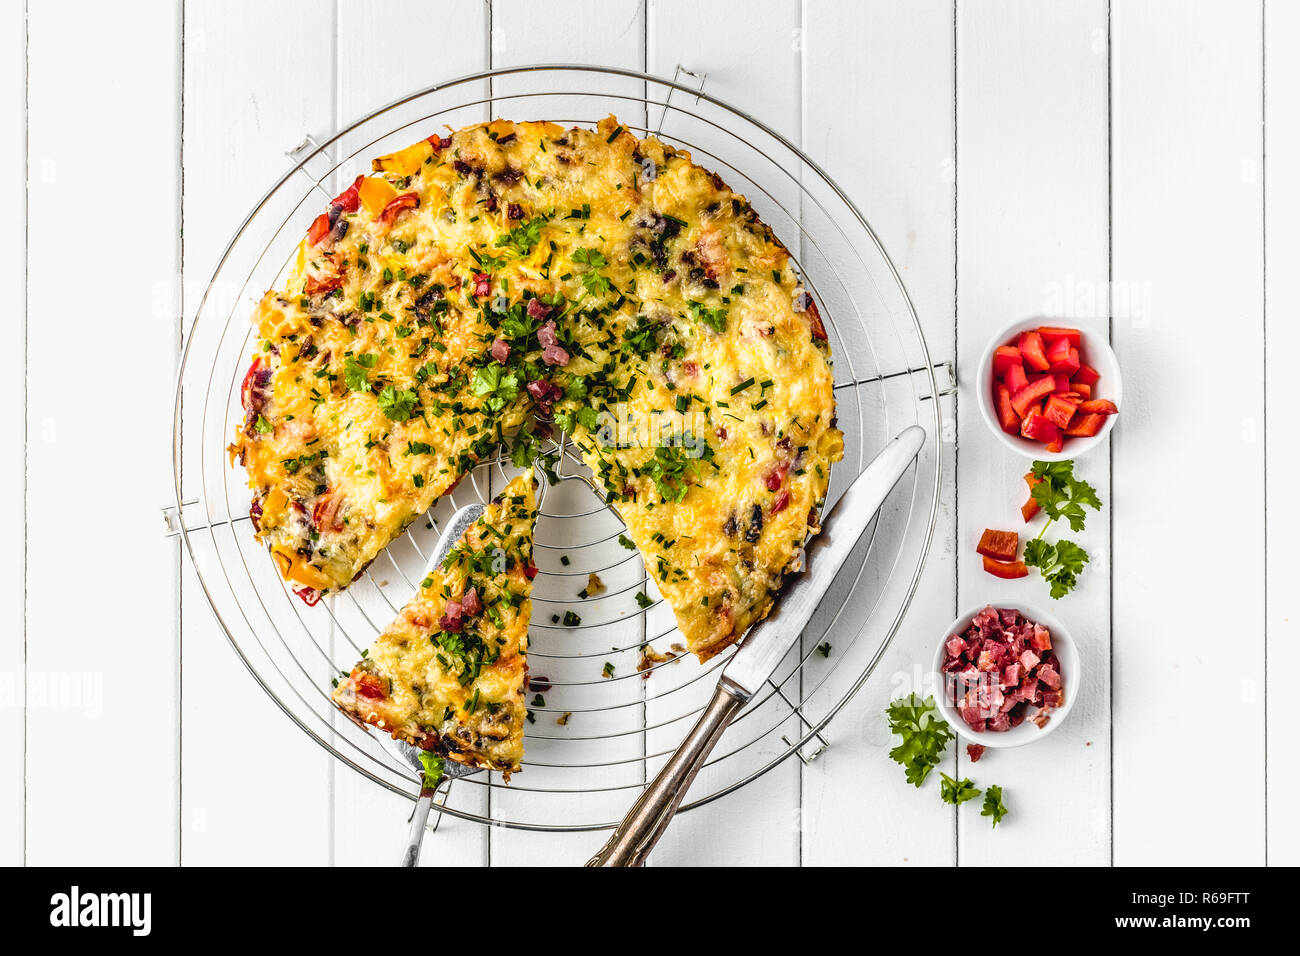 Healthy breakfast food, Stuffed egg omelette with vegetable and bacon - Stock Image